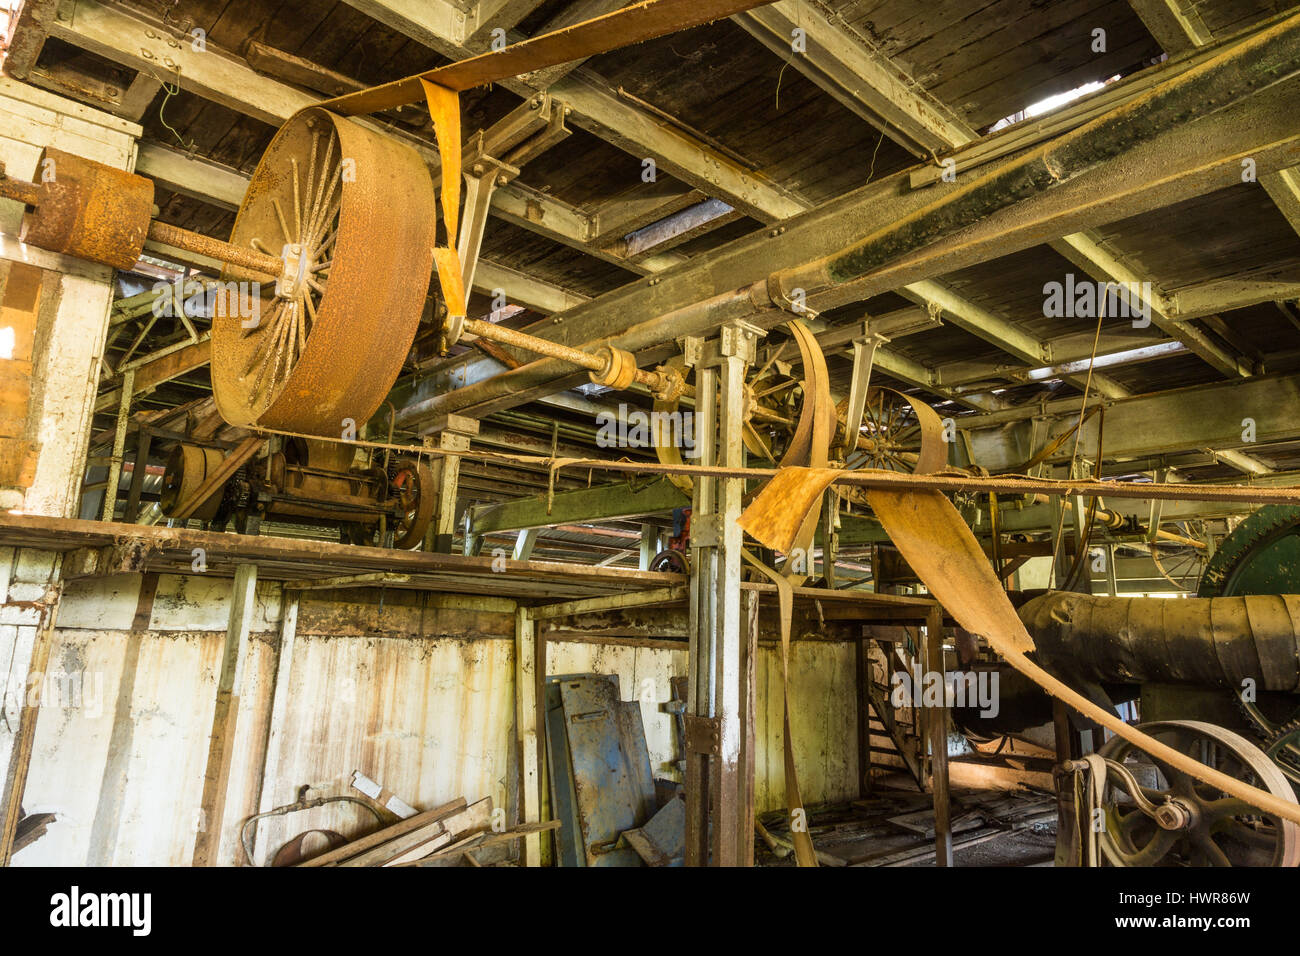 Old machinery in the abandoned coffee processing plant on the Pepperpot Plantation near Paramaribo, Suriname. - Stock Image